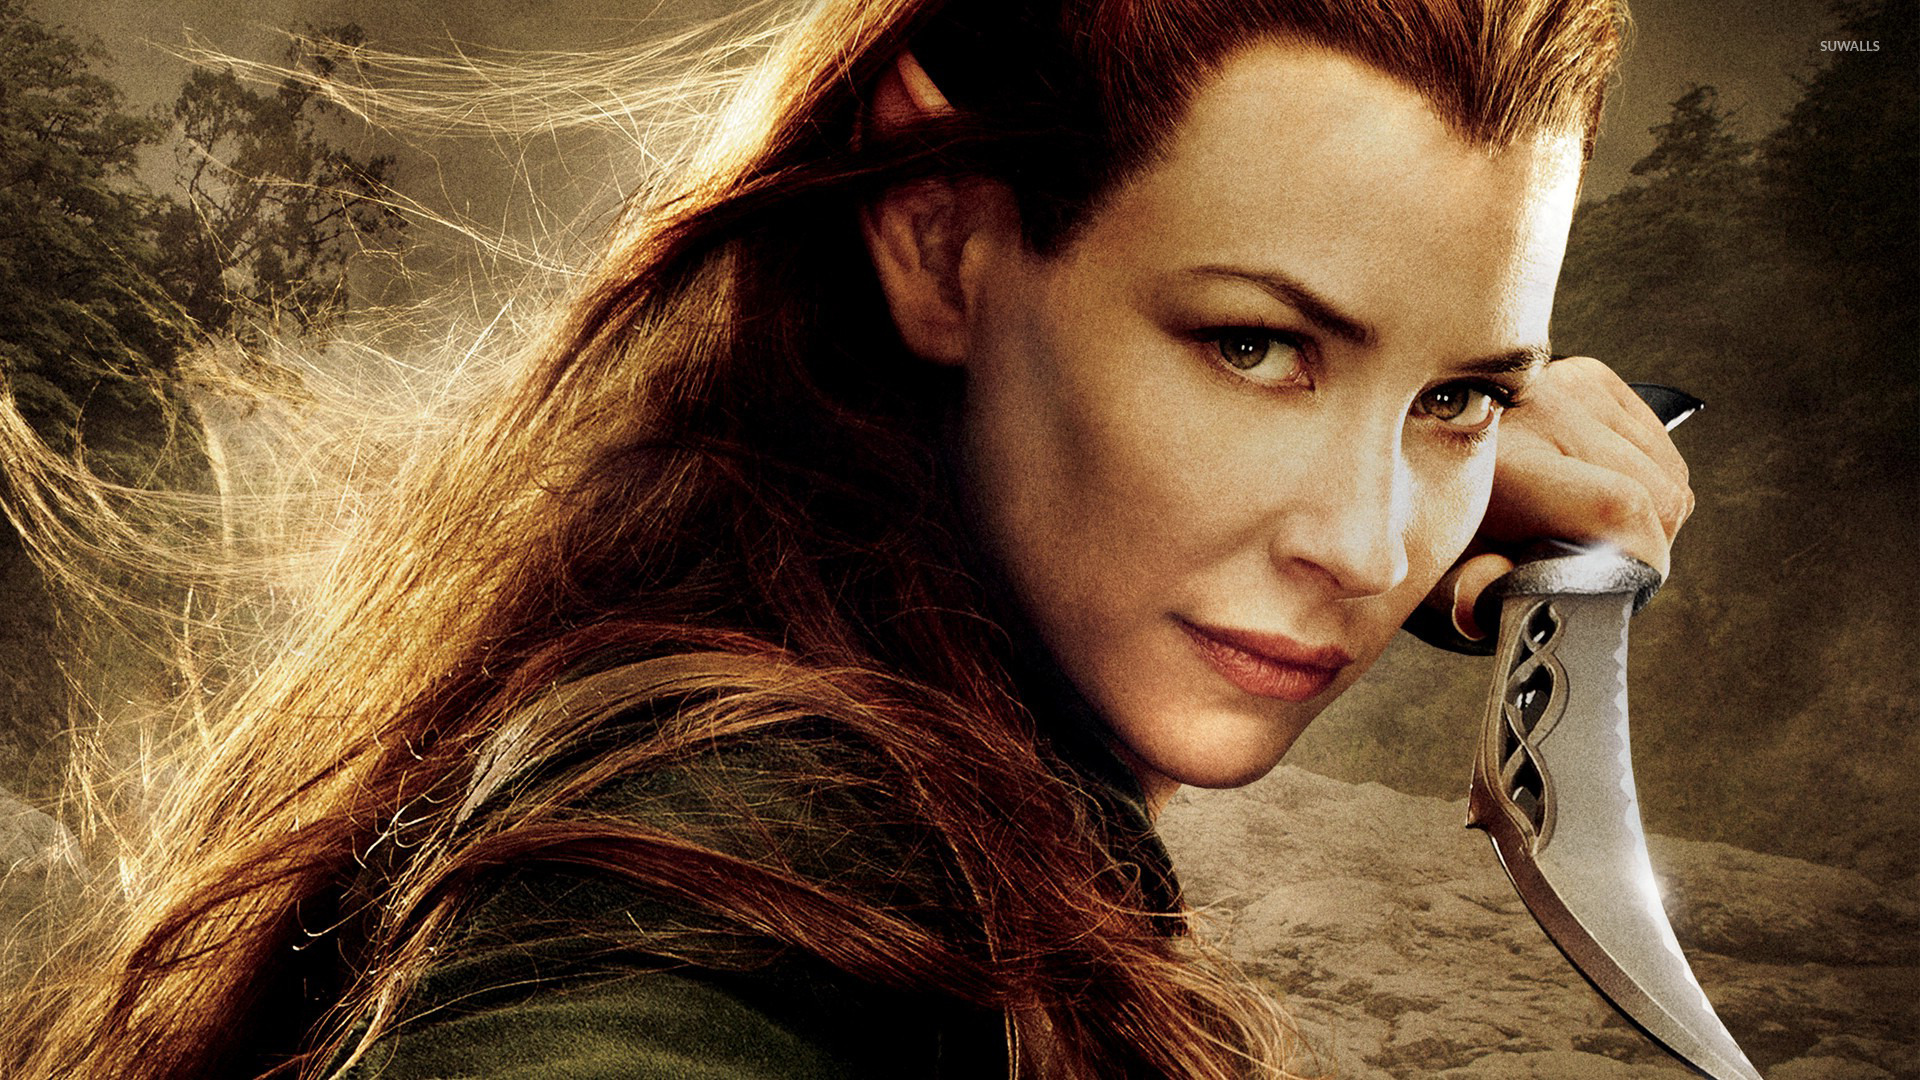 Tauriel   The Hobbit The Desolation of Smaug wallpaper 1920x1080 1920x1080